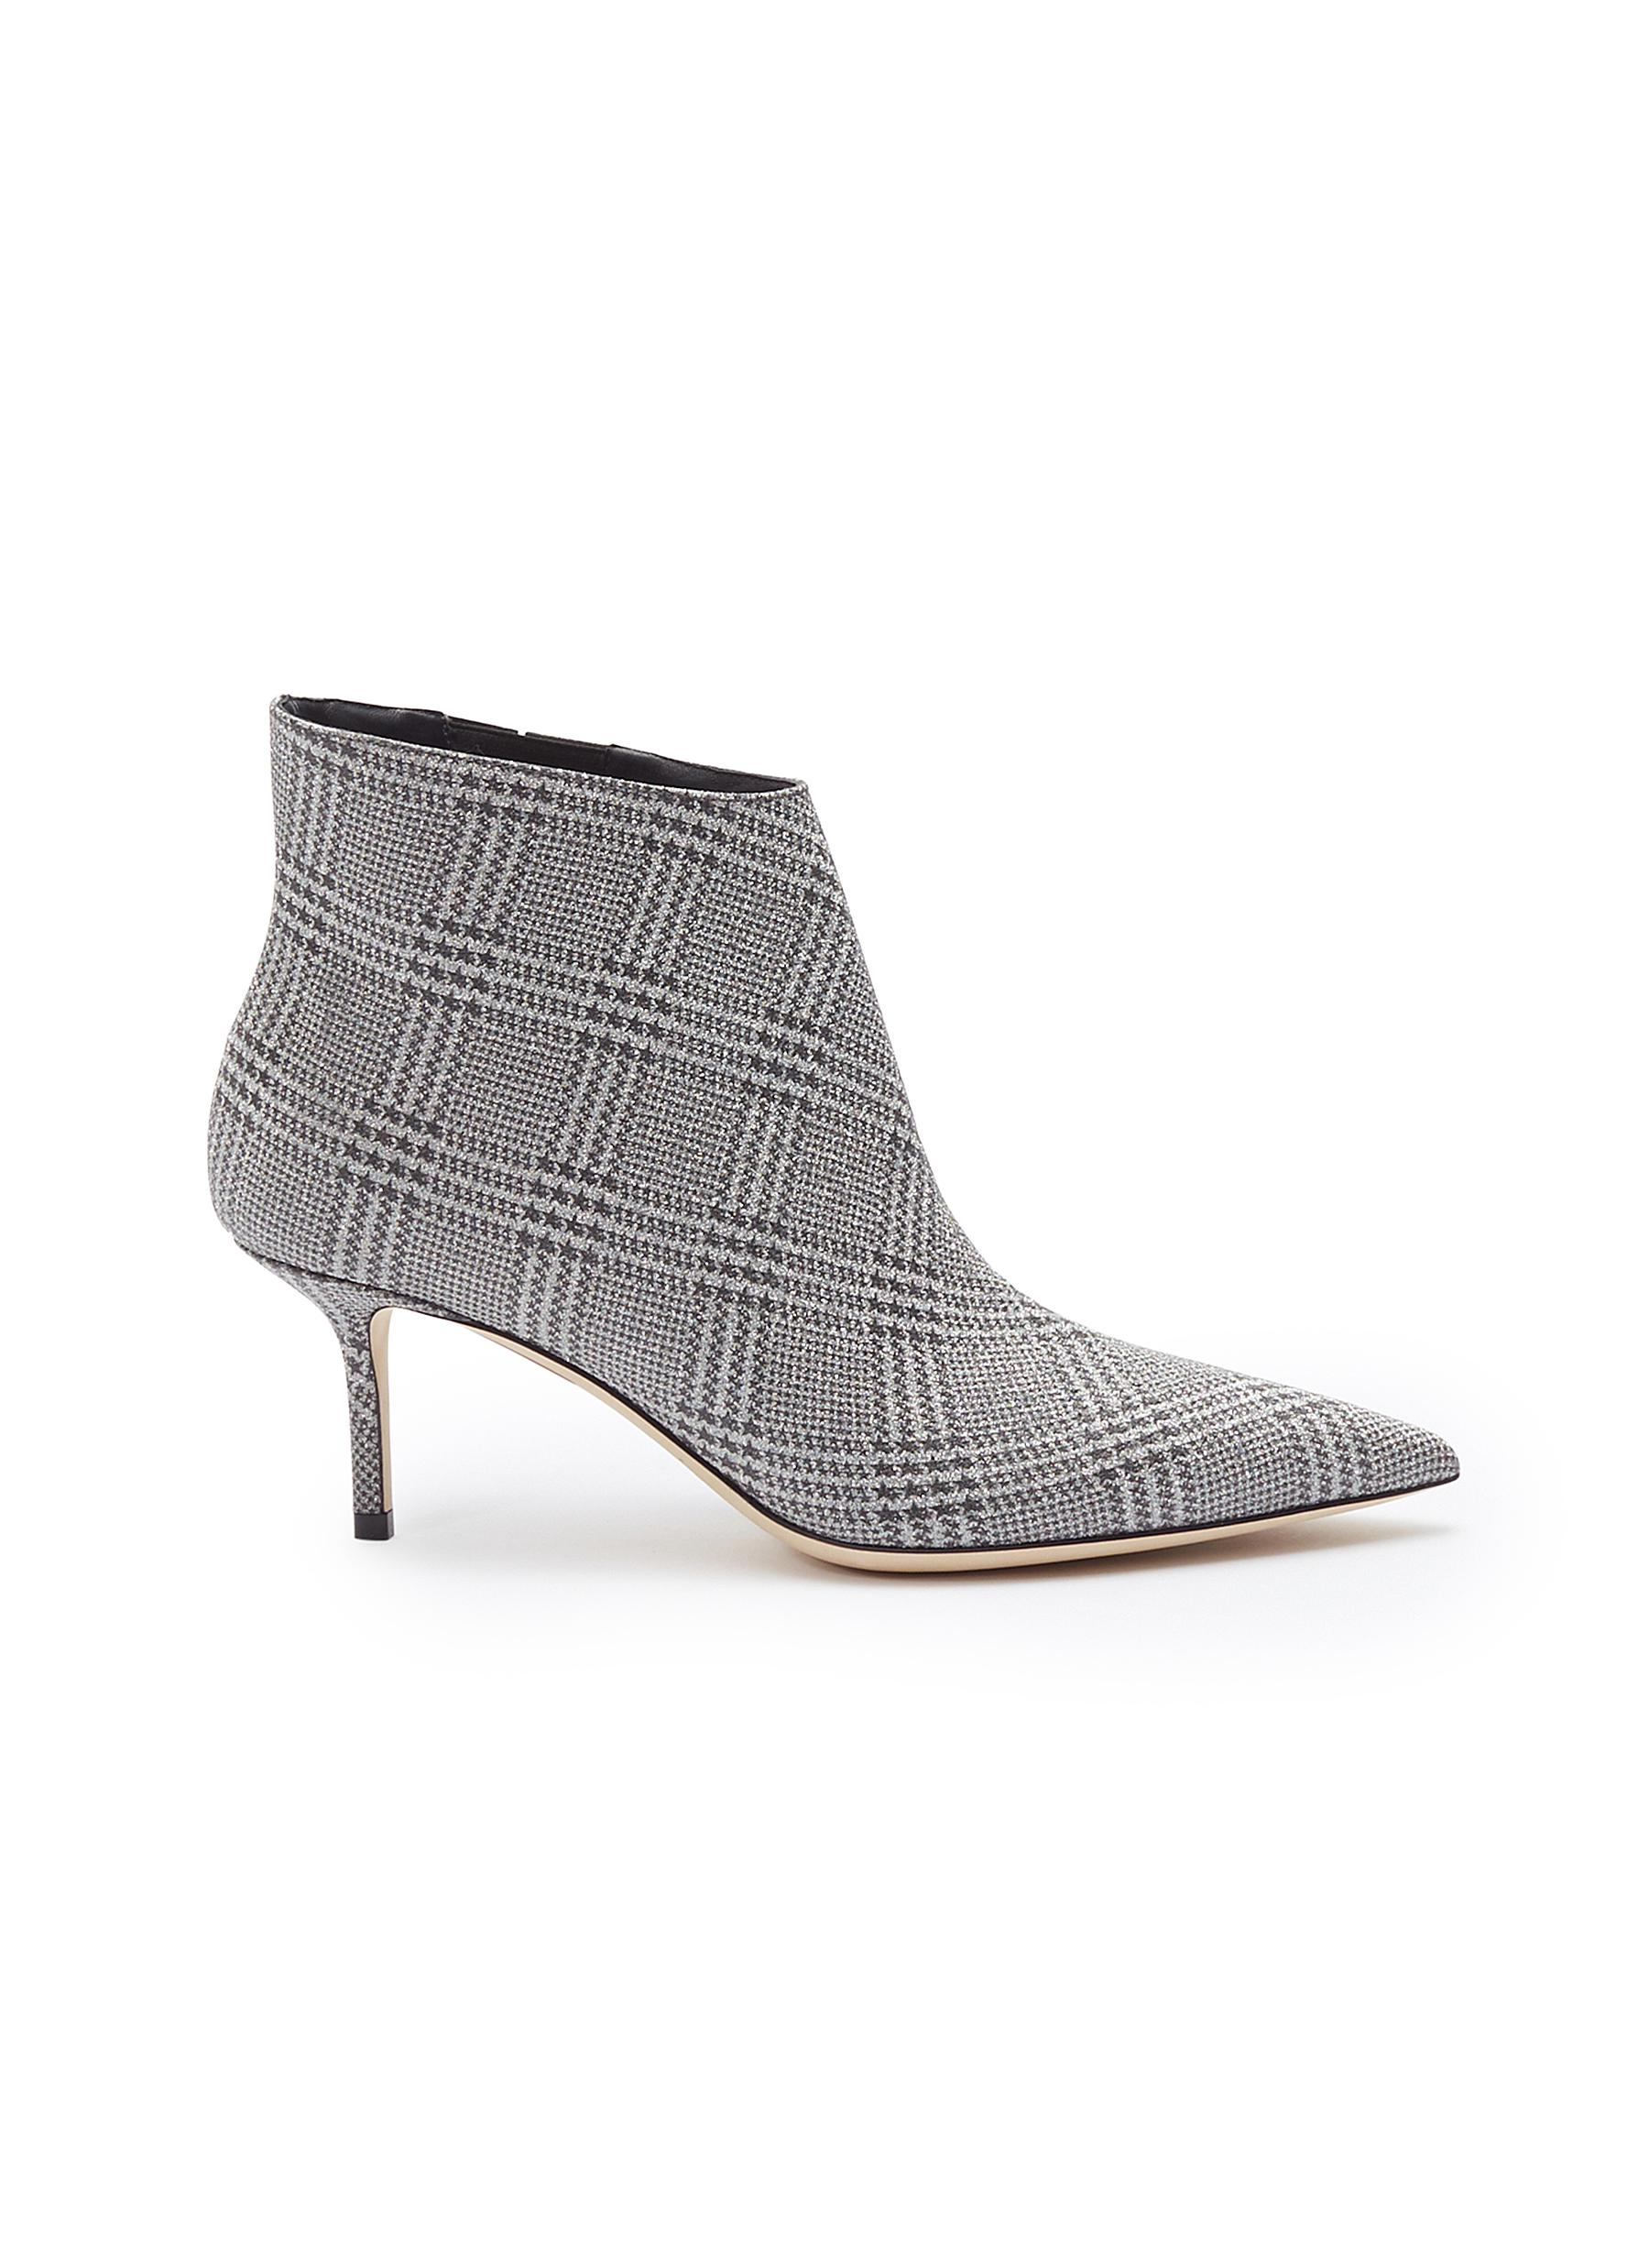 Marinda 65 Prince of Stars check plaid ankle boots by Jimmy Choo